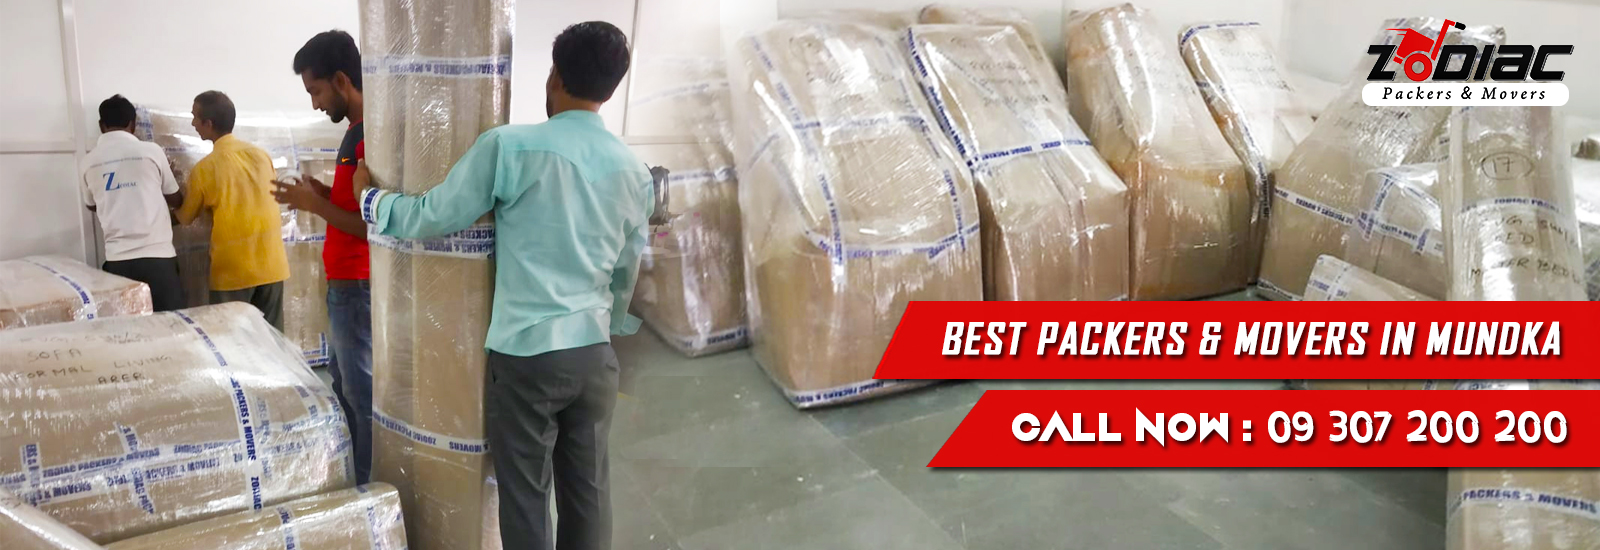 Packers and Movers in Mundka